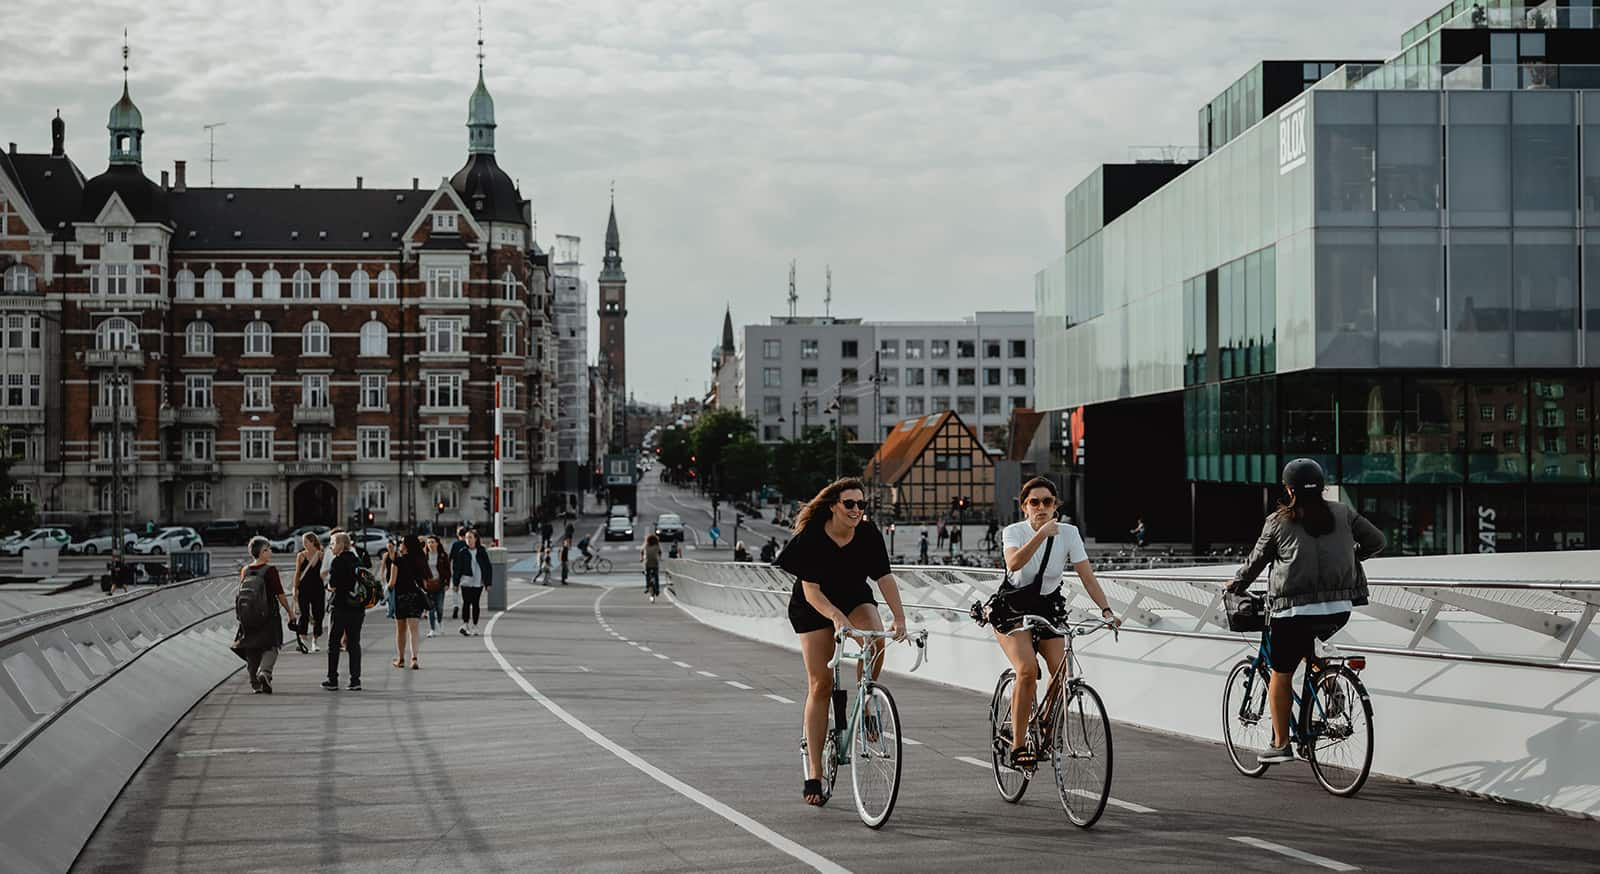 Bicycle brige, Copenhagen